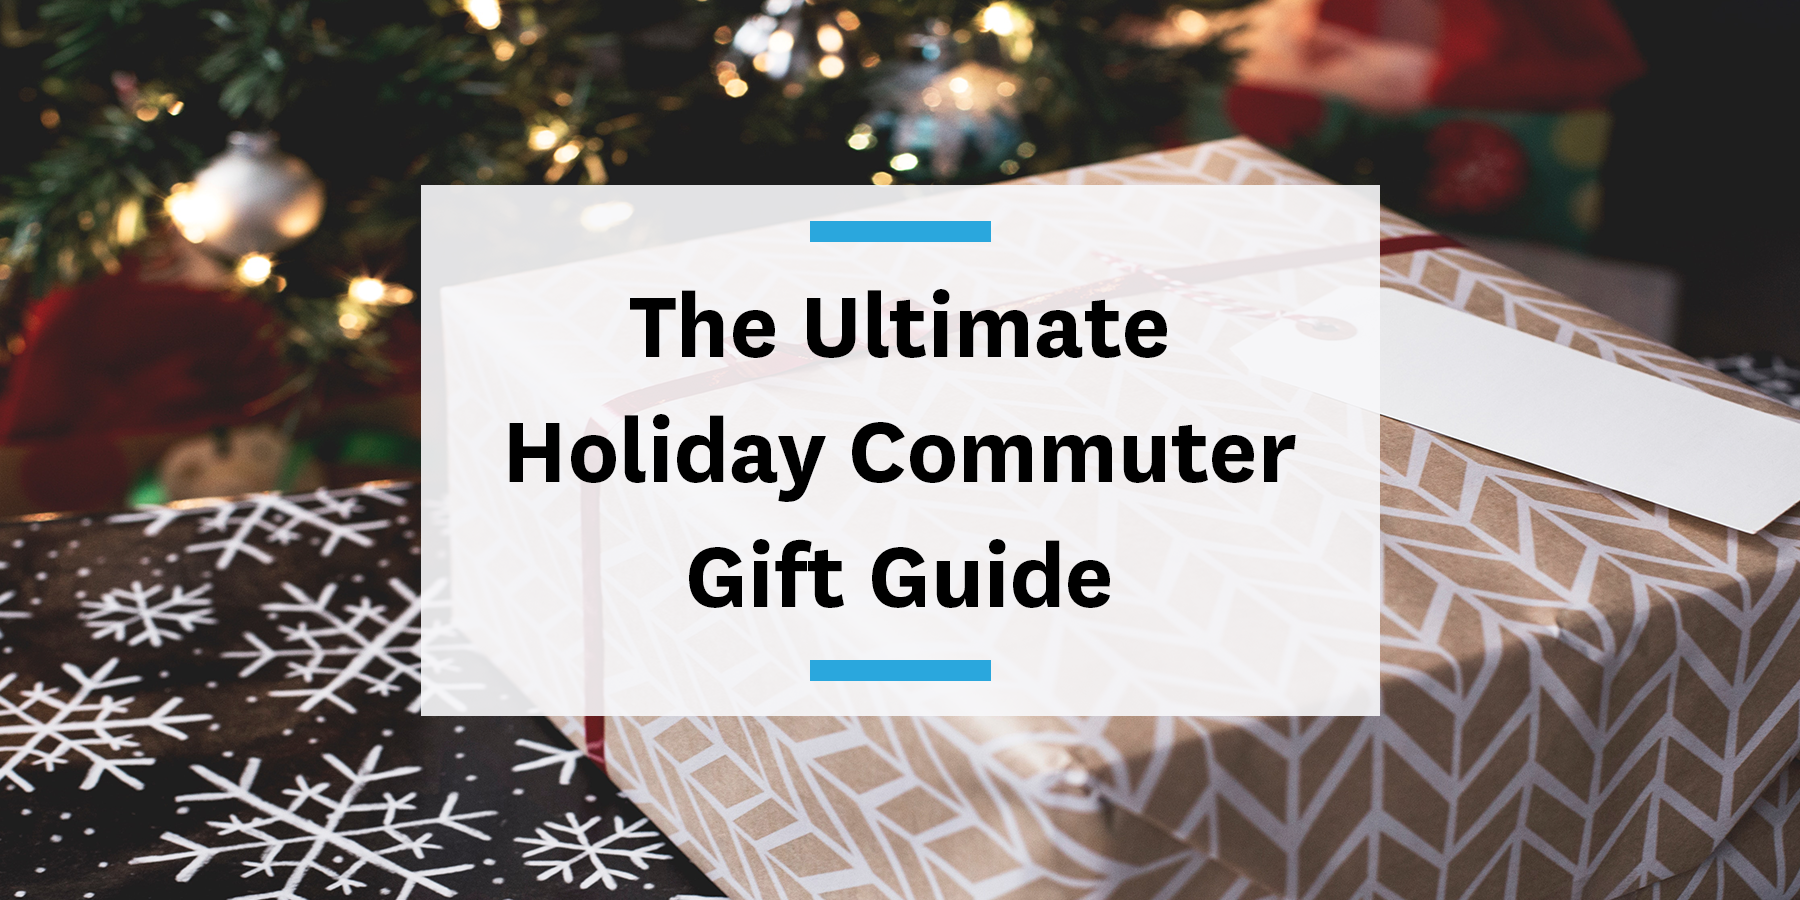 The ultimate holiday commuter gift guide